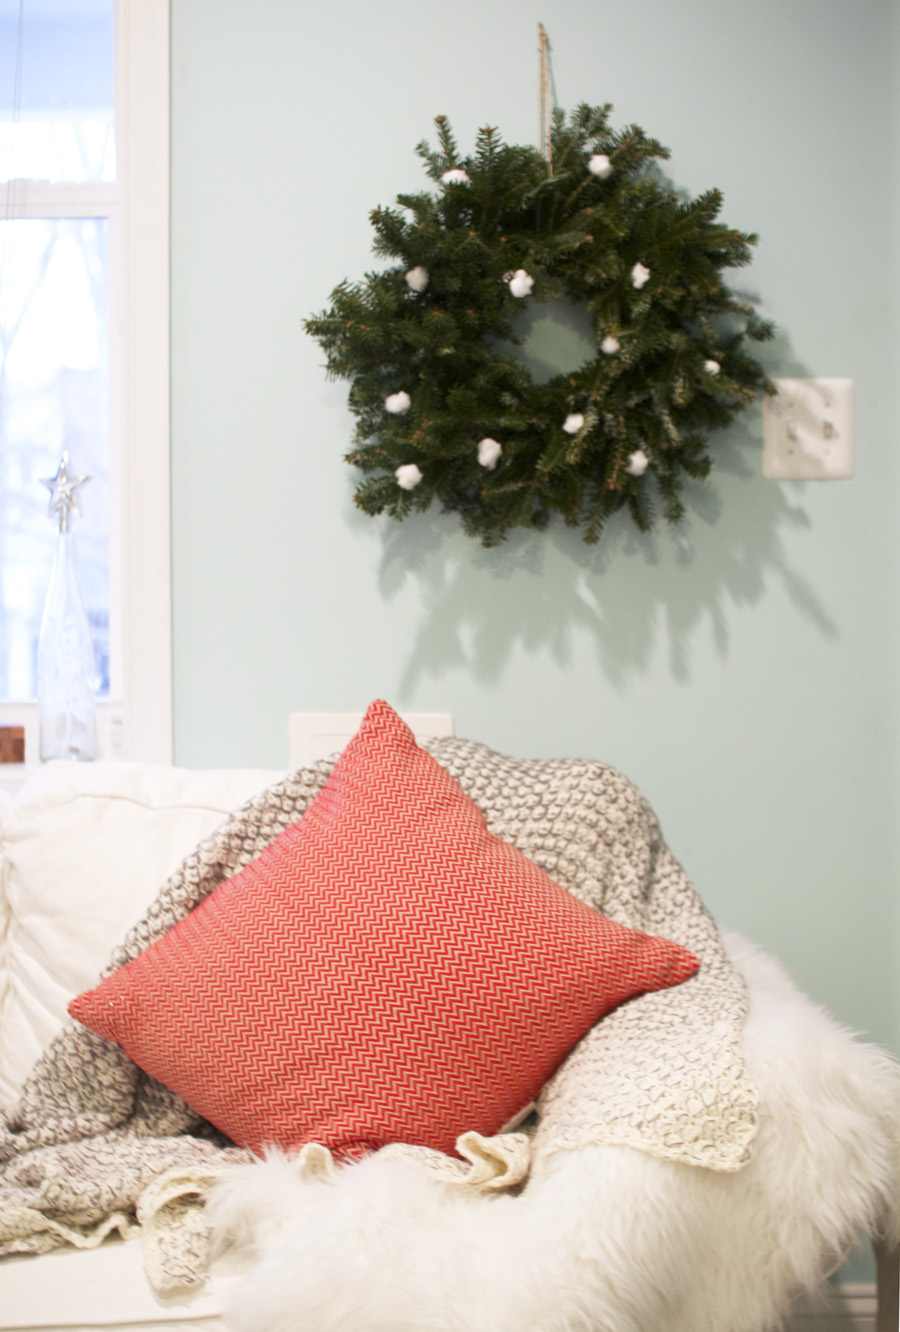 Key to cozy holiday decor: Layers and simple wreaths